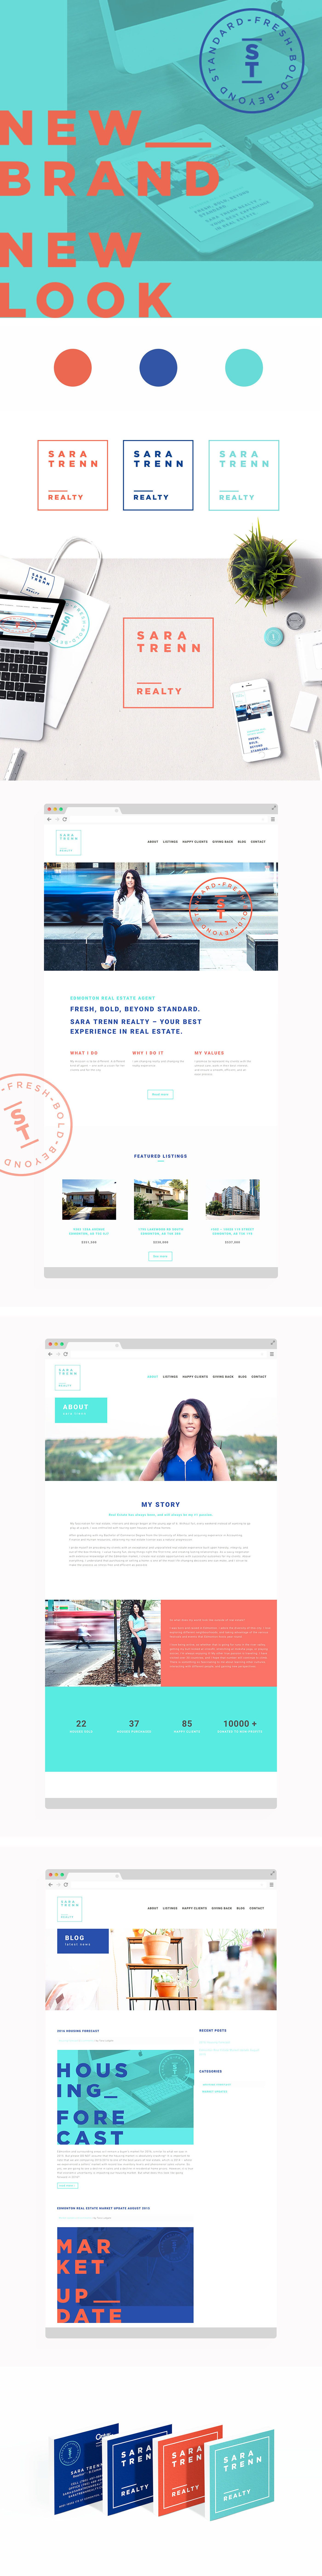 Check Out This Behance Project Sara Trenn Realty Https Www Behance Net Gallery 49109945 Sara Trenn Realty